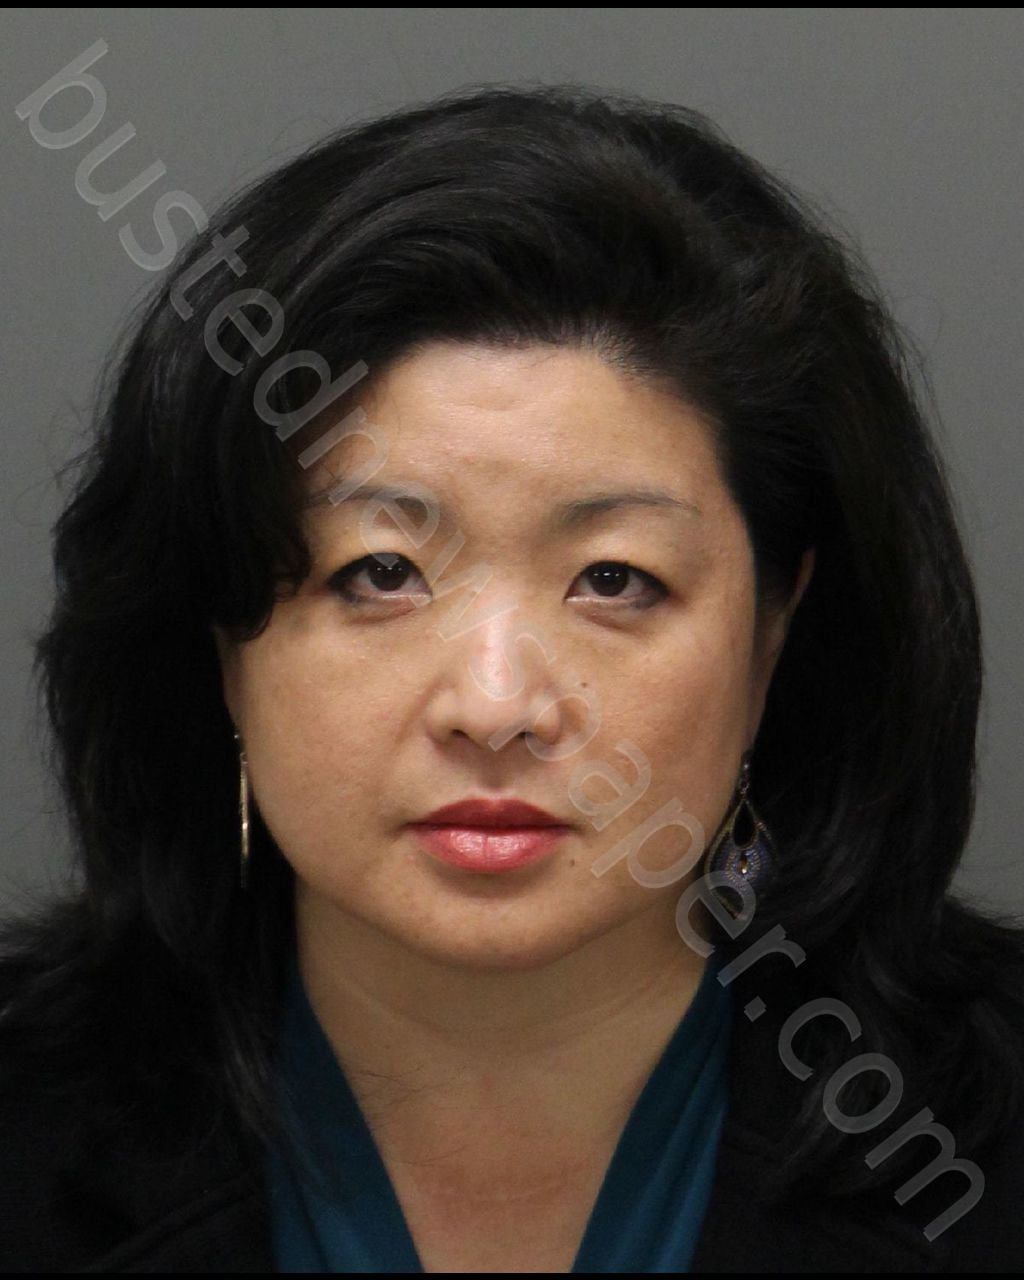 FISHER,JEAN BANG Mugshot, Wake County, North Carolina - 2018-12-06